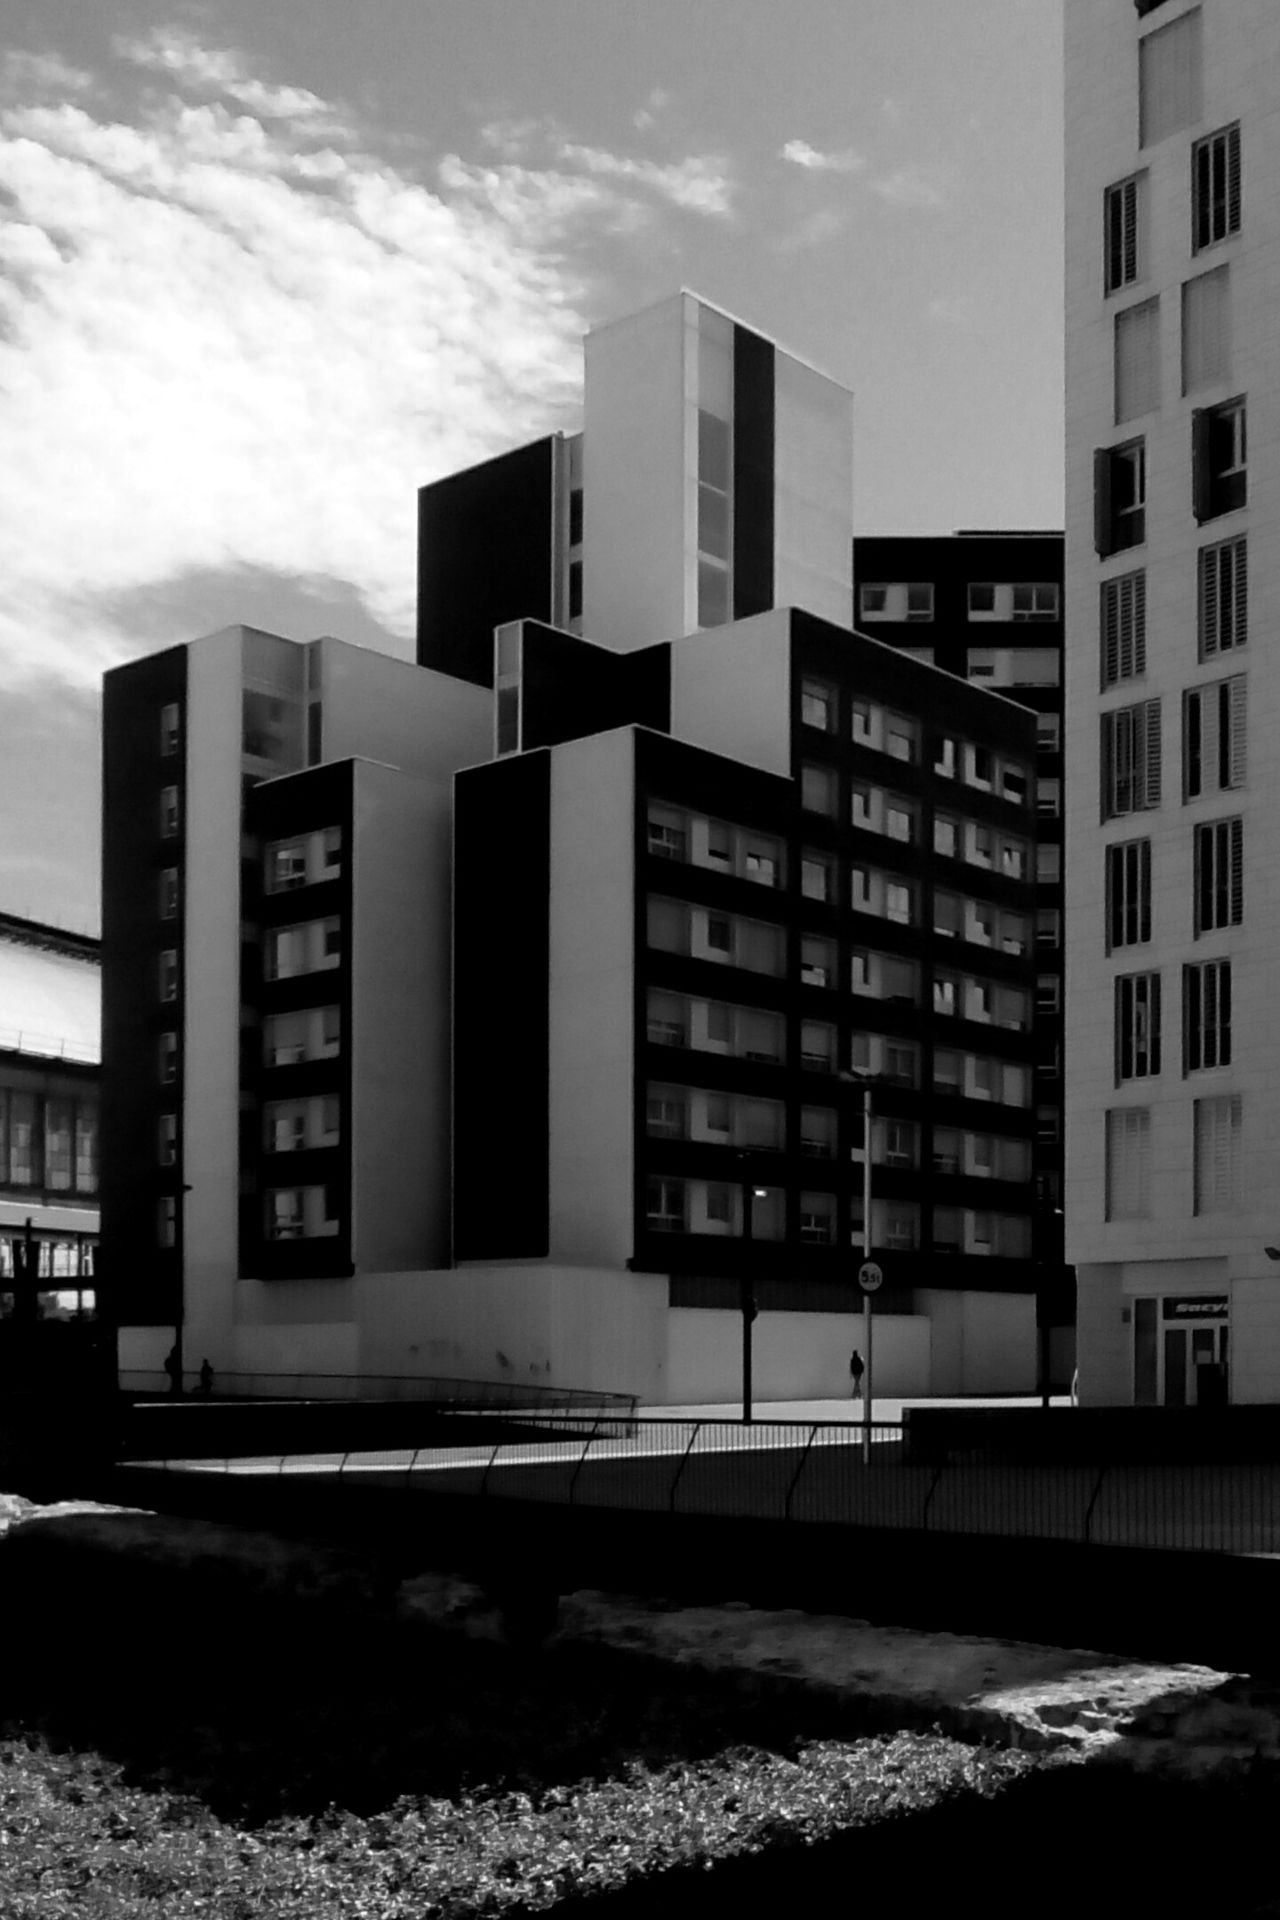 Architecture Modern City Built Structure Building Exterior Urban Skyline Cityscape Outdoors Day No People Open Edit Light And Shadow Monochrome Blackandwhite